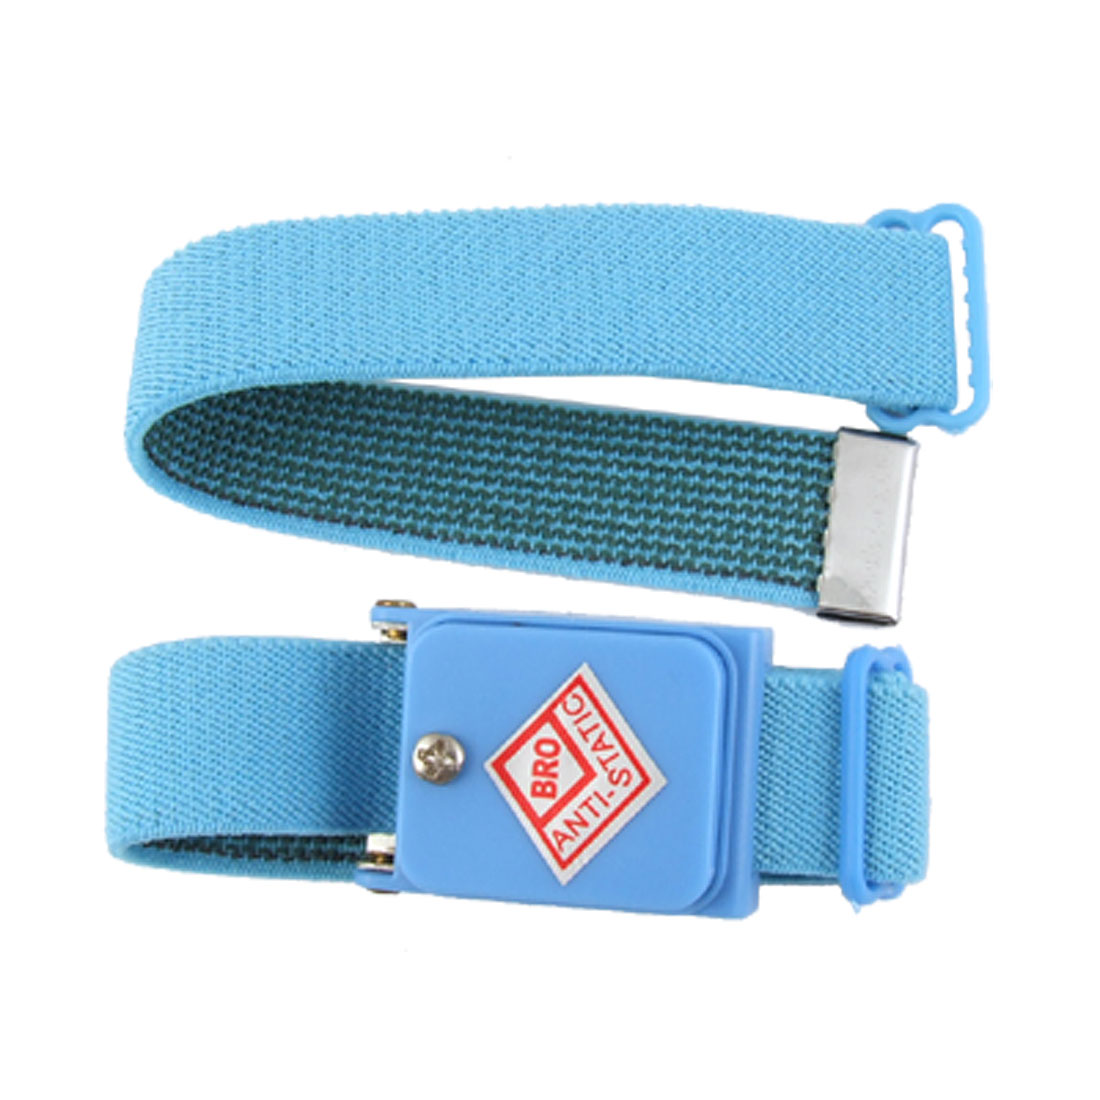 Cordless Anti Static Wrist Strap Elastic Wristband Skyblue 2 in 1 Set